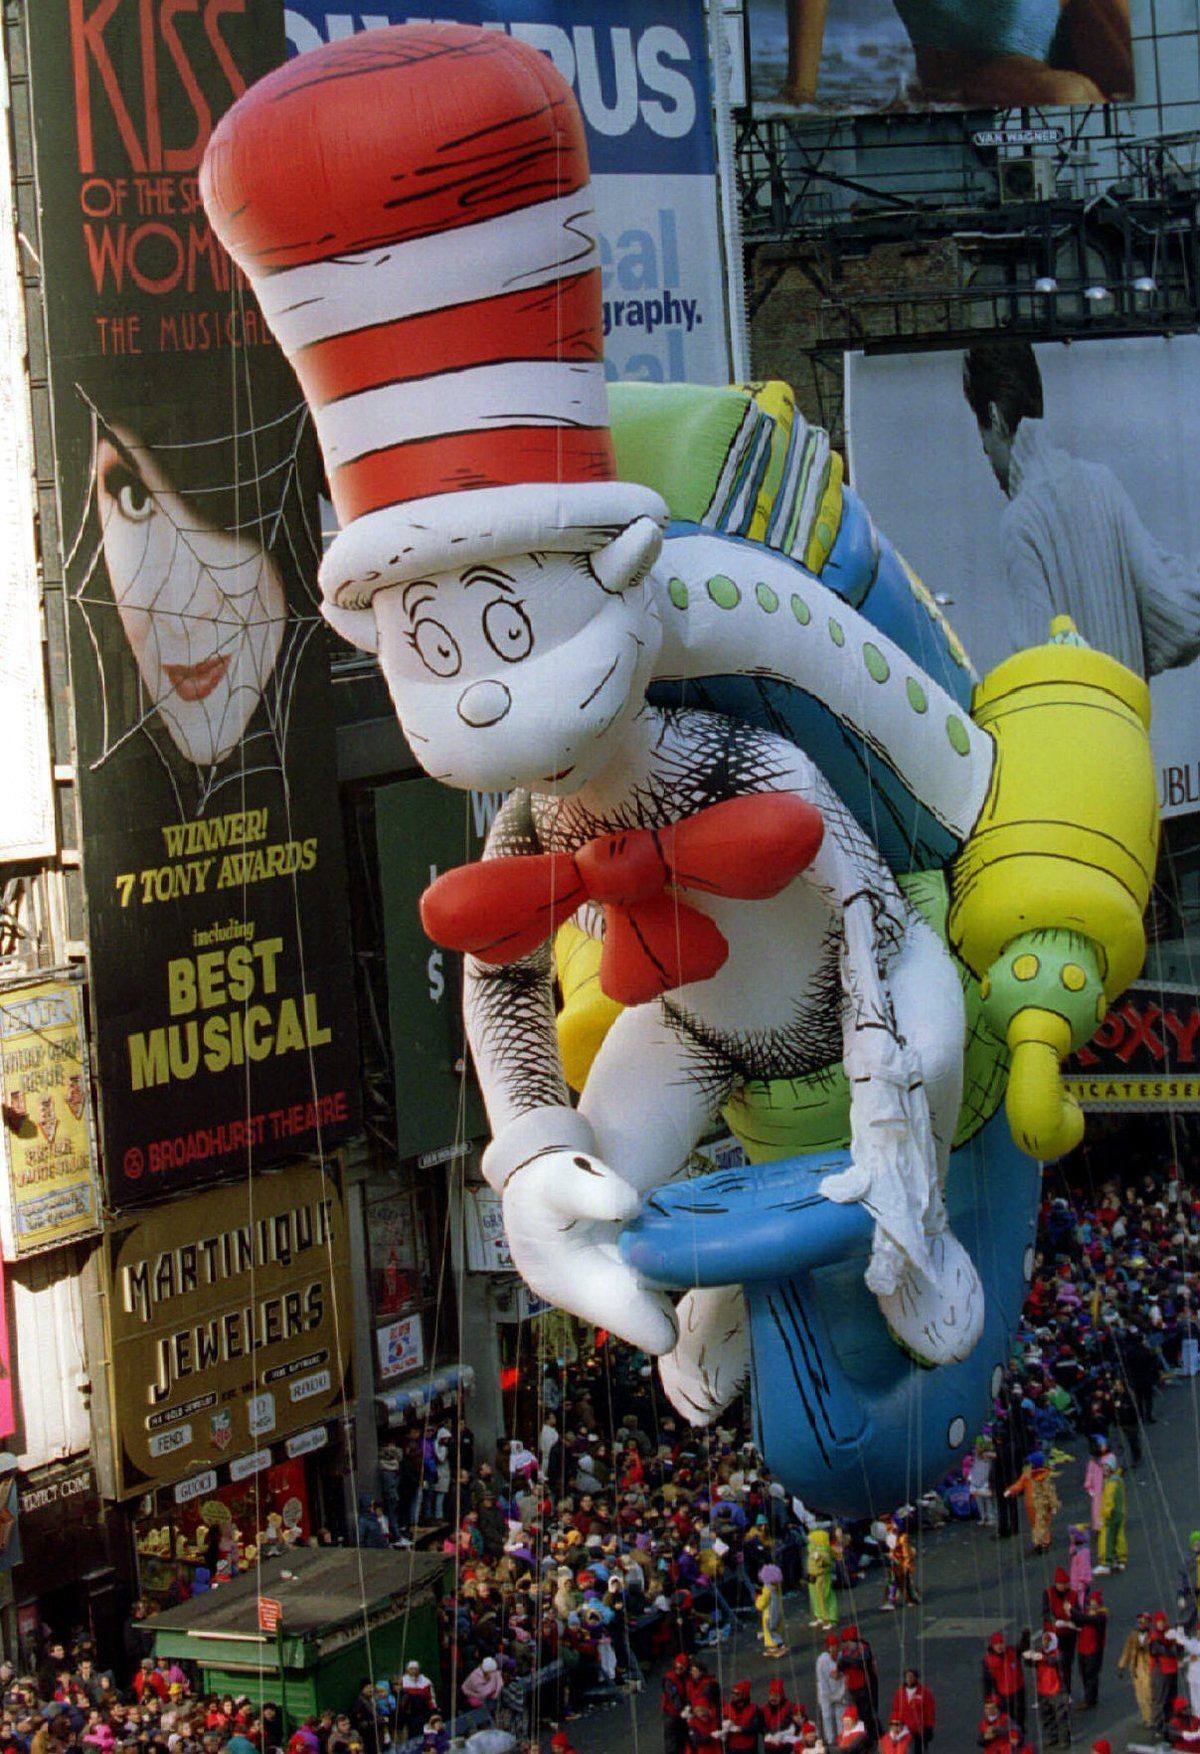 The 89 Year Evolution Of The Macy S Thanksgiving Day Parade 1997 Macy S Parade Balloon In 2020 Macy S Thanksgiving Day Parade Macys Thanksgiving Parade Macys Parade